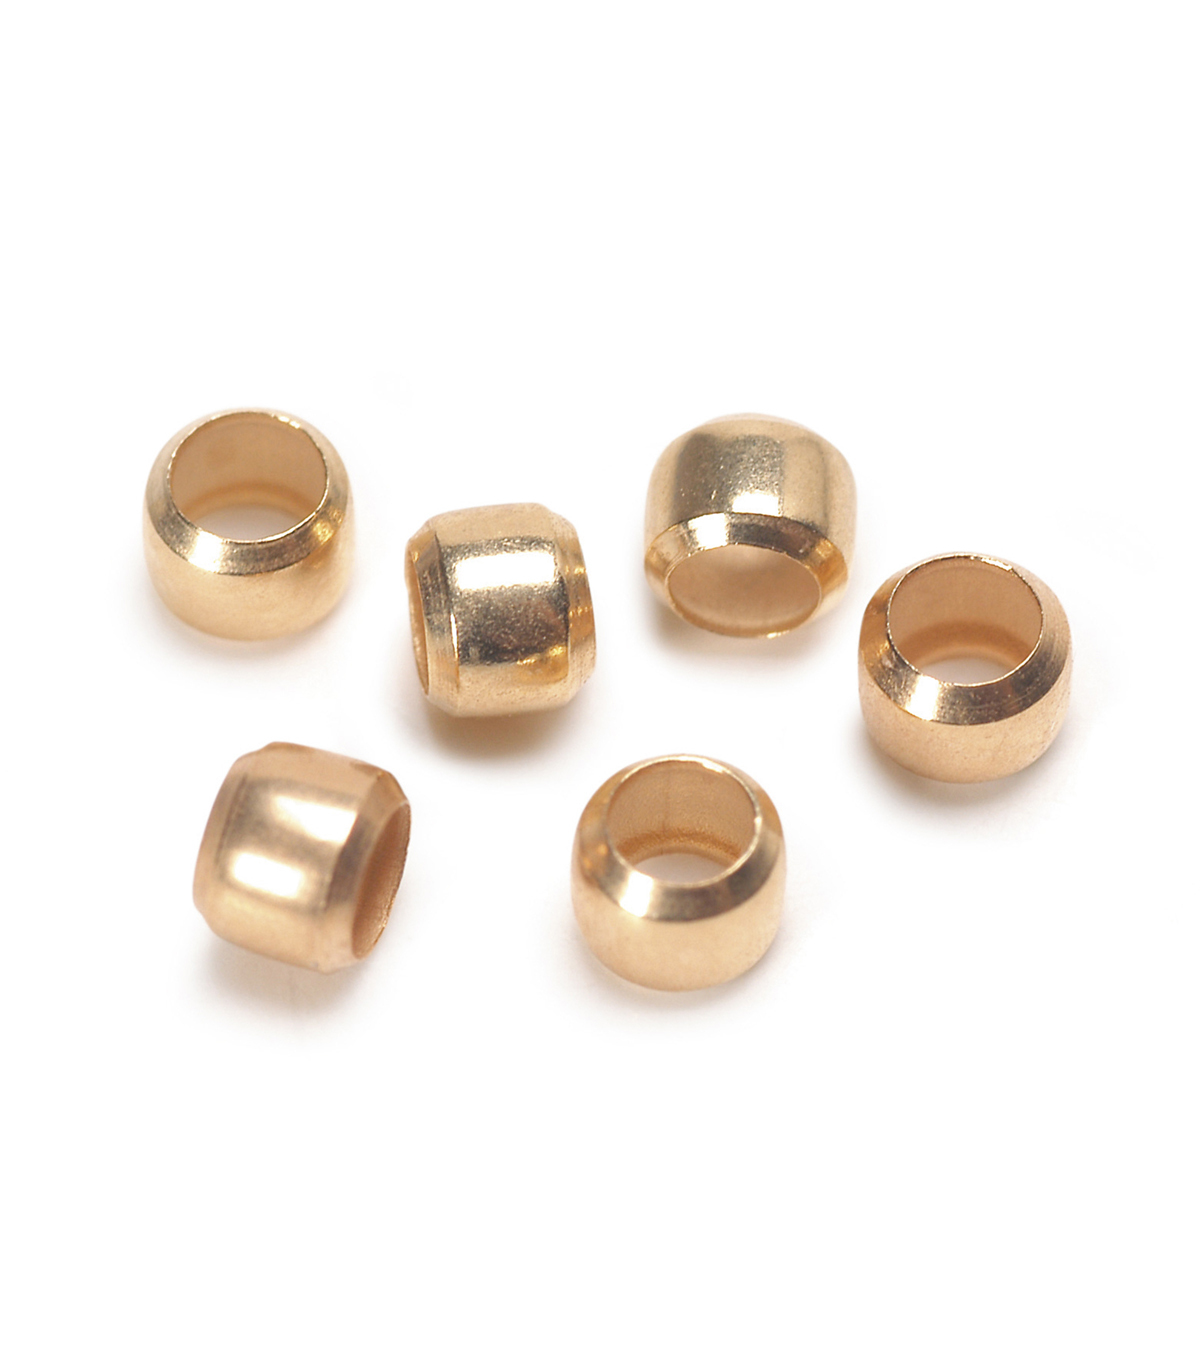 2.5mm Gold Crimp Beads